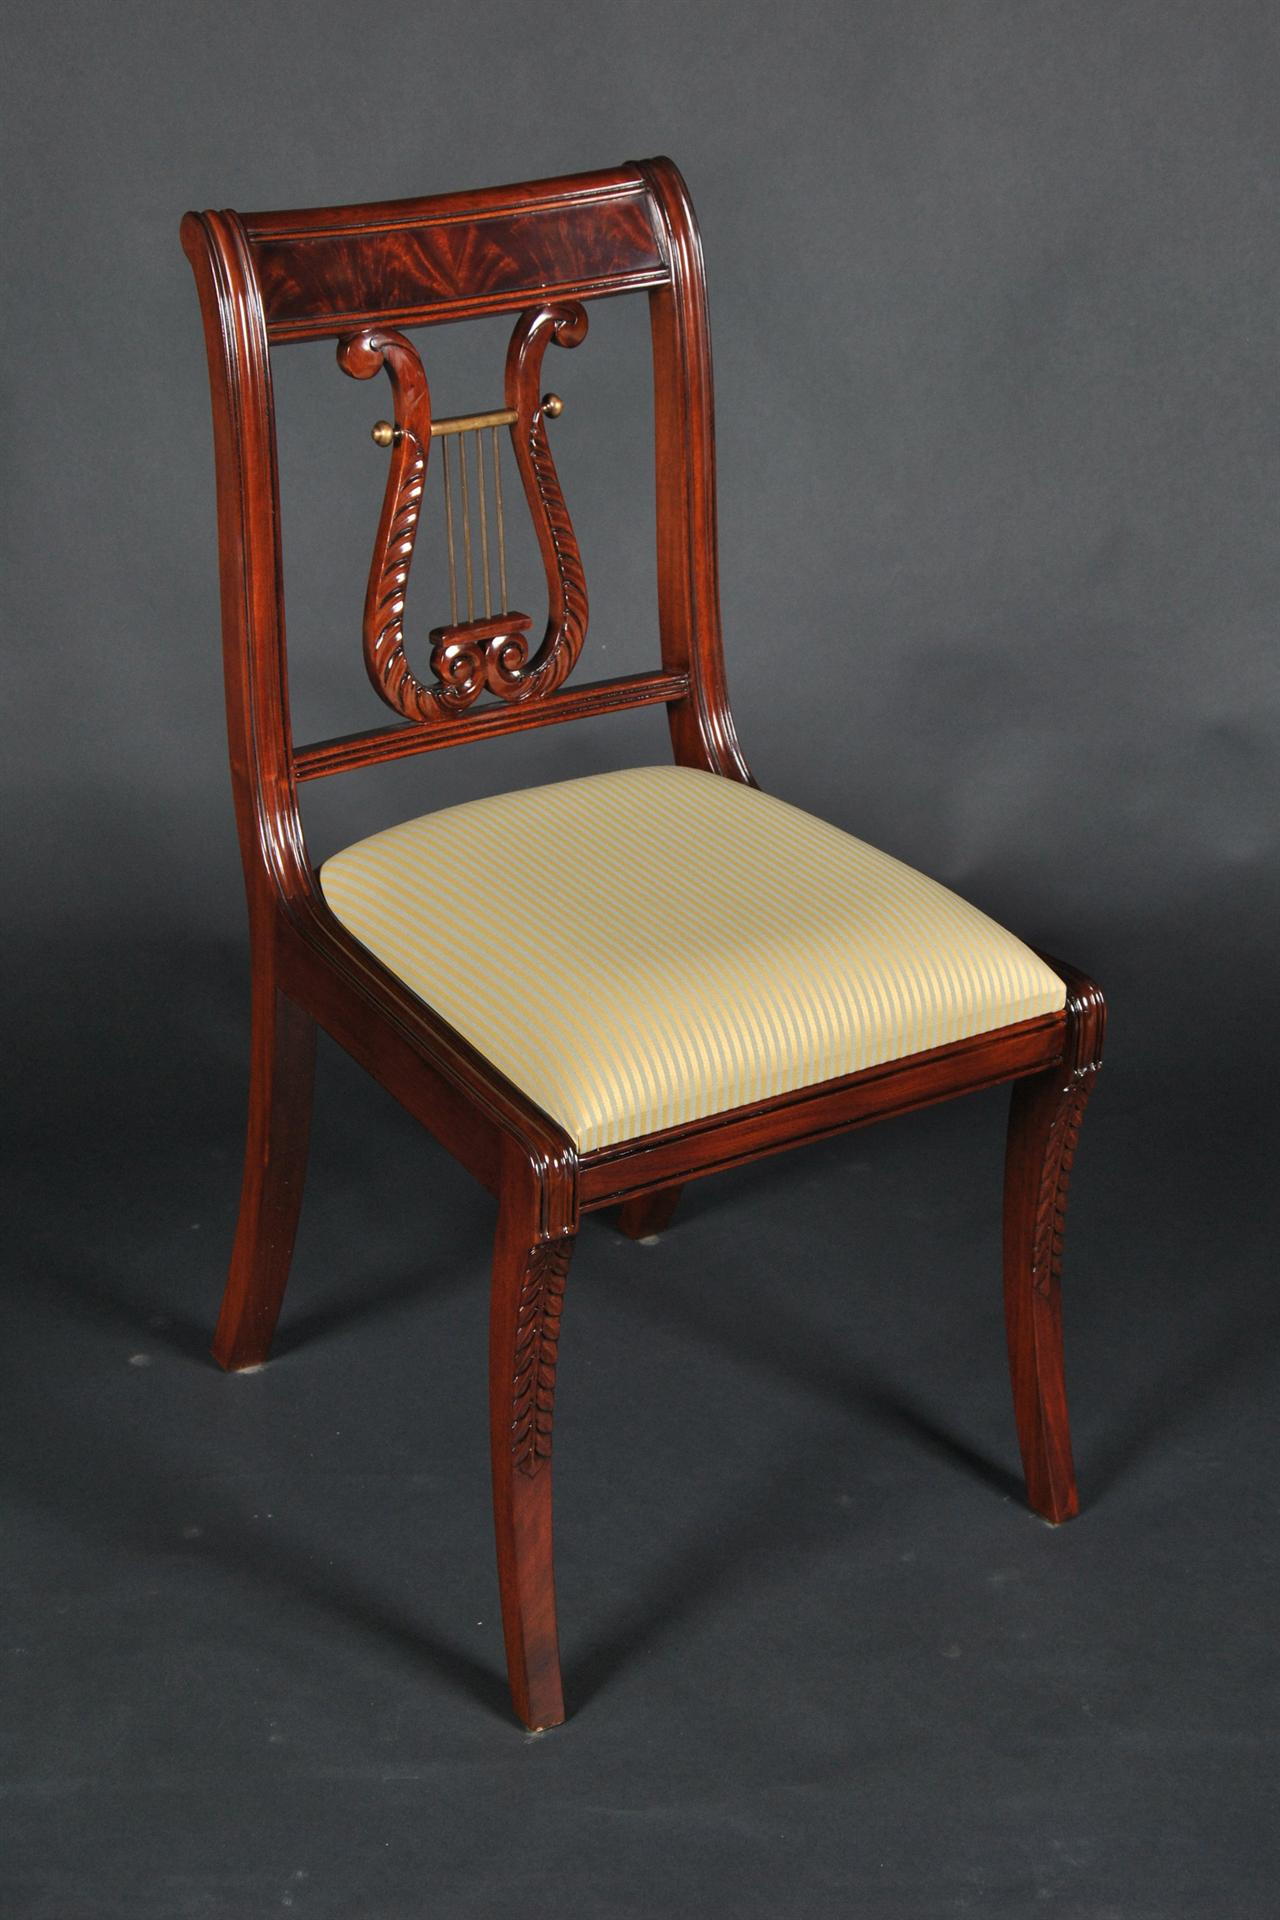 Tremendous Antique Klismos Dining Chairs Klismos Chairs Empire Regency Ncnpc Chair Design For Home Ncnpcorg